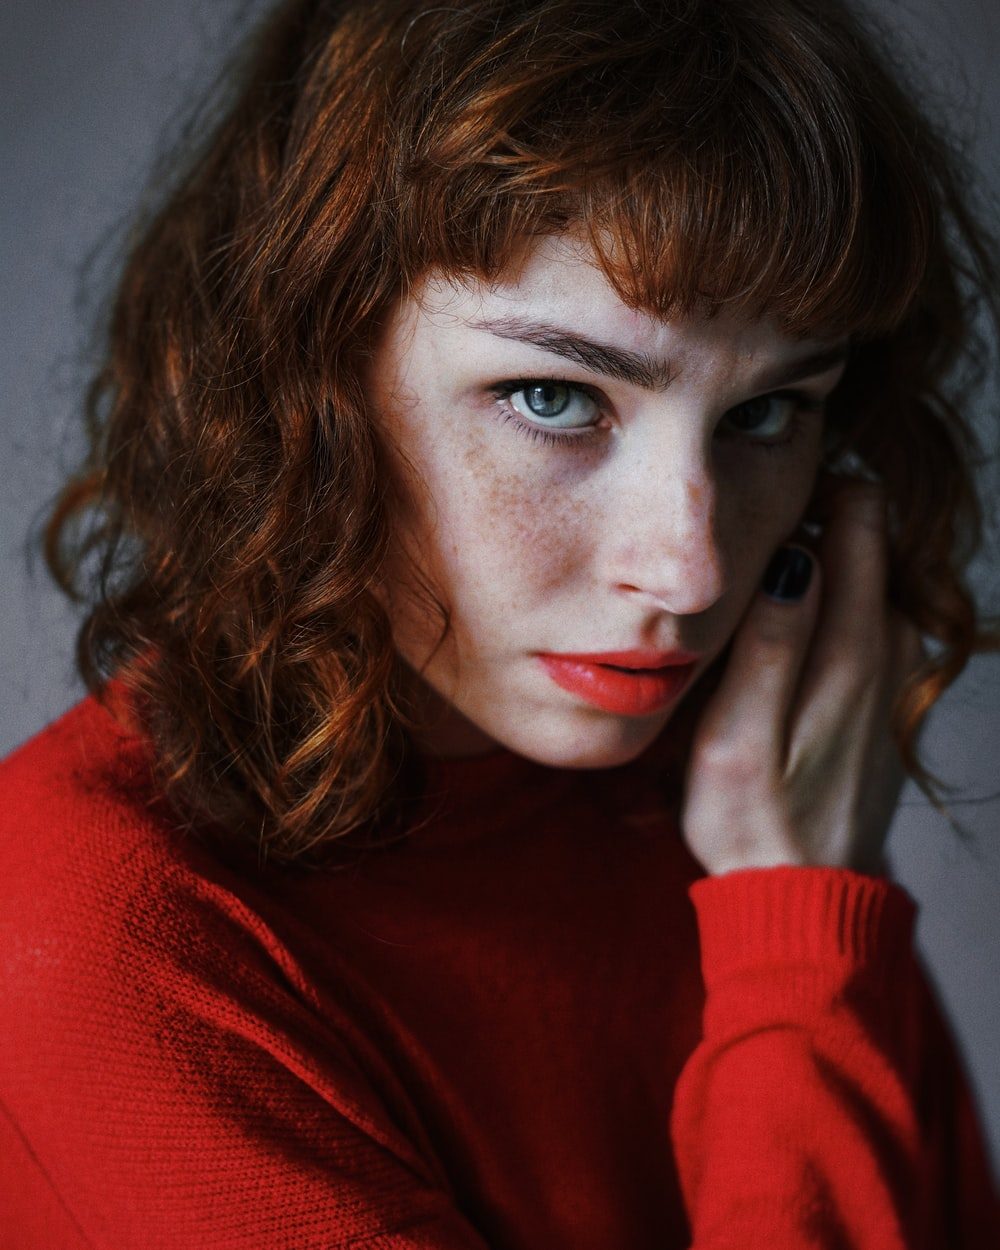 woman wearing red crew-neck sweater looking straight